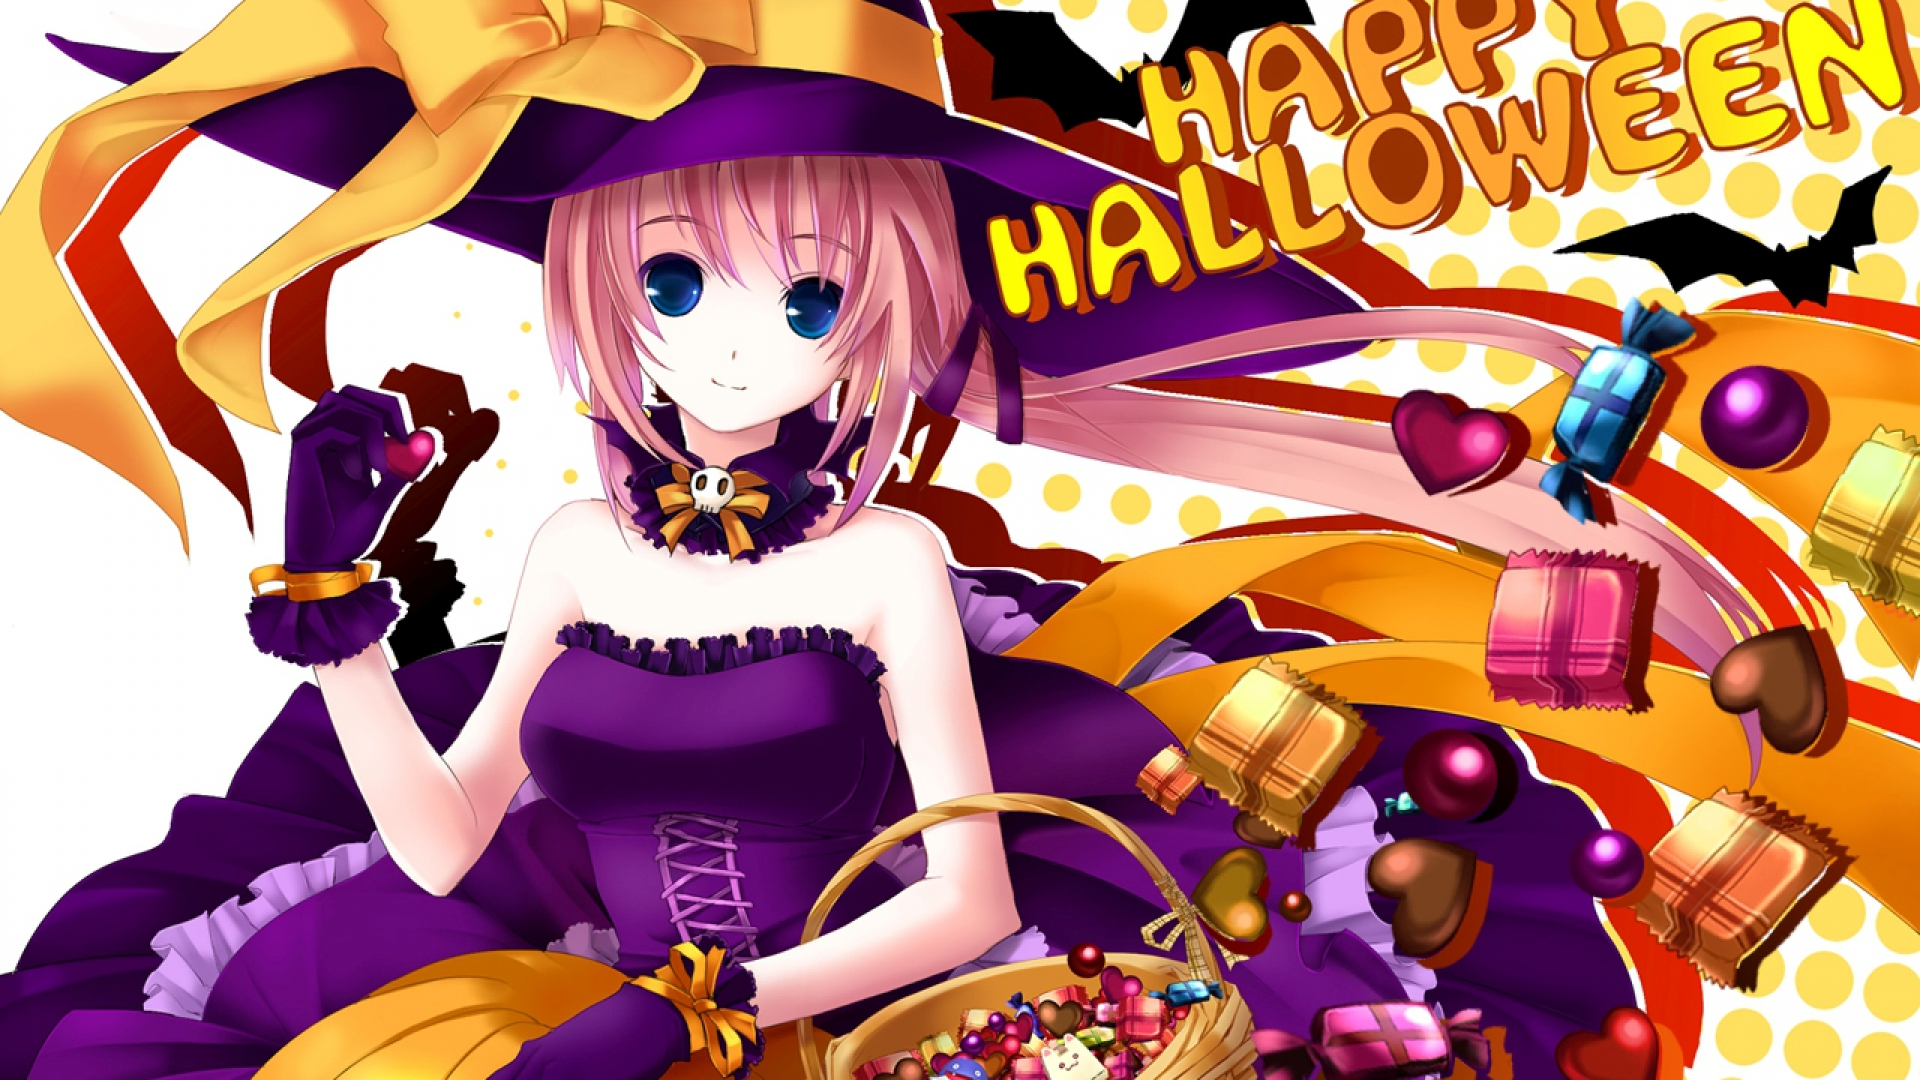 Anime Characters For Halloween : Happy halloween everyone epicly amazing